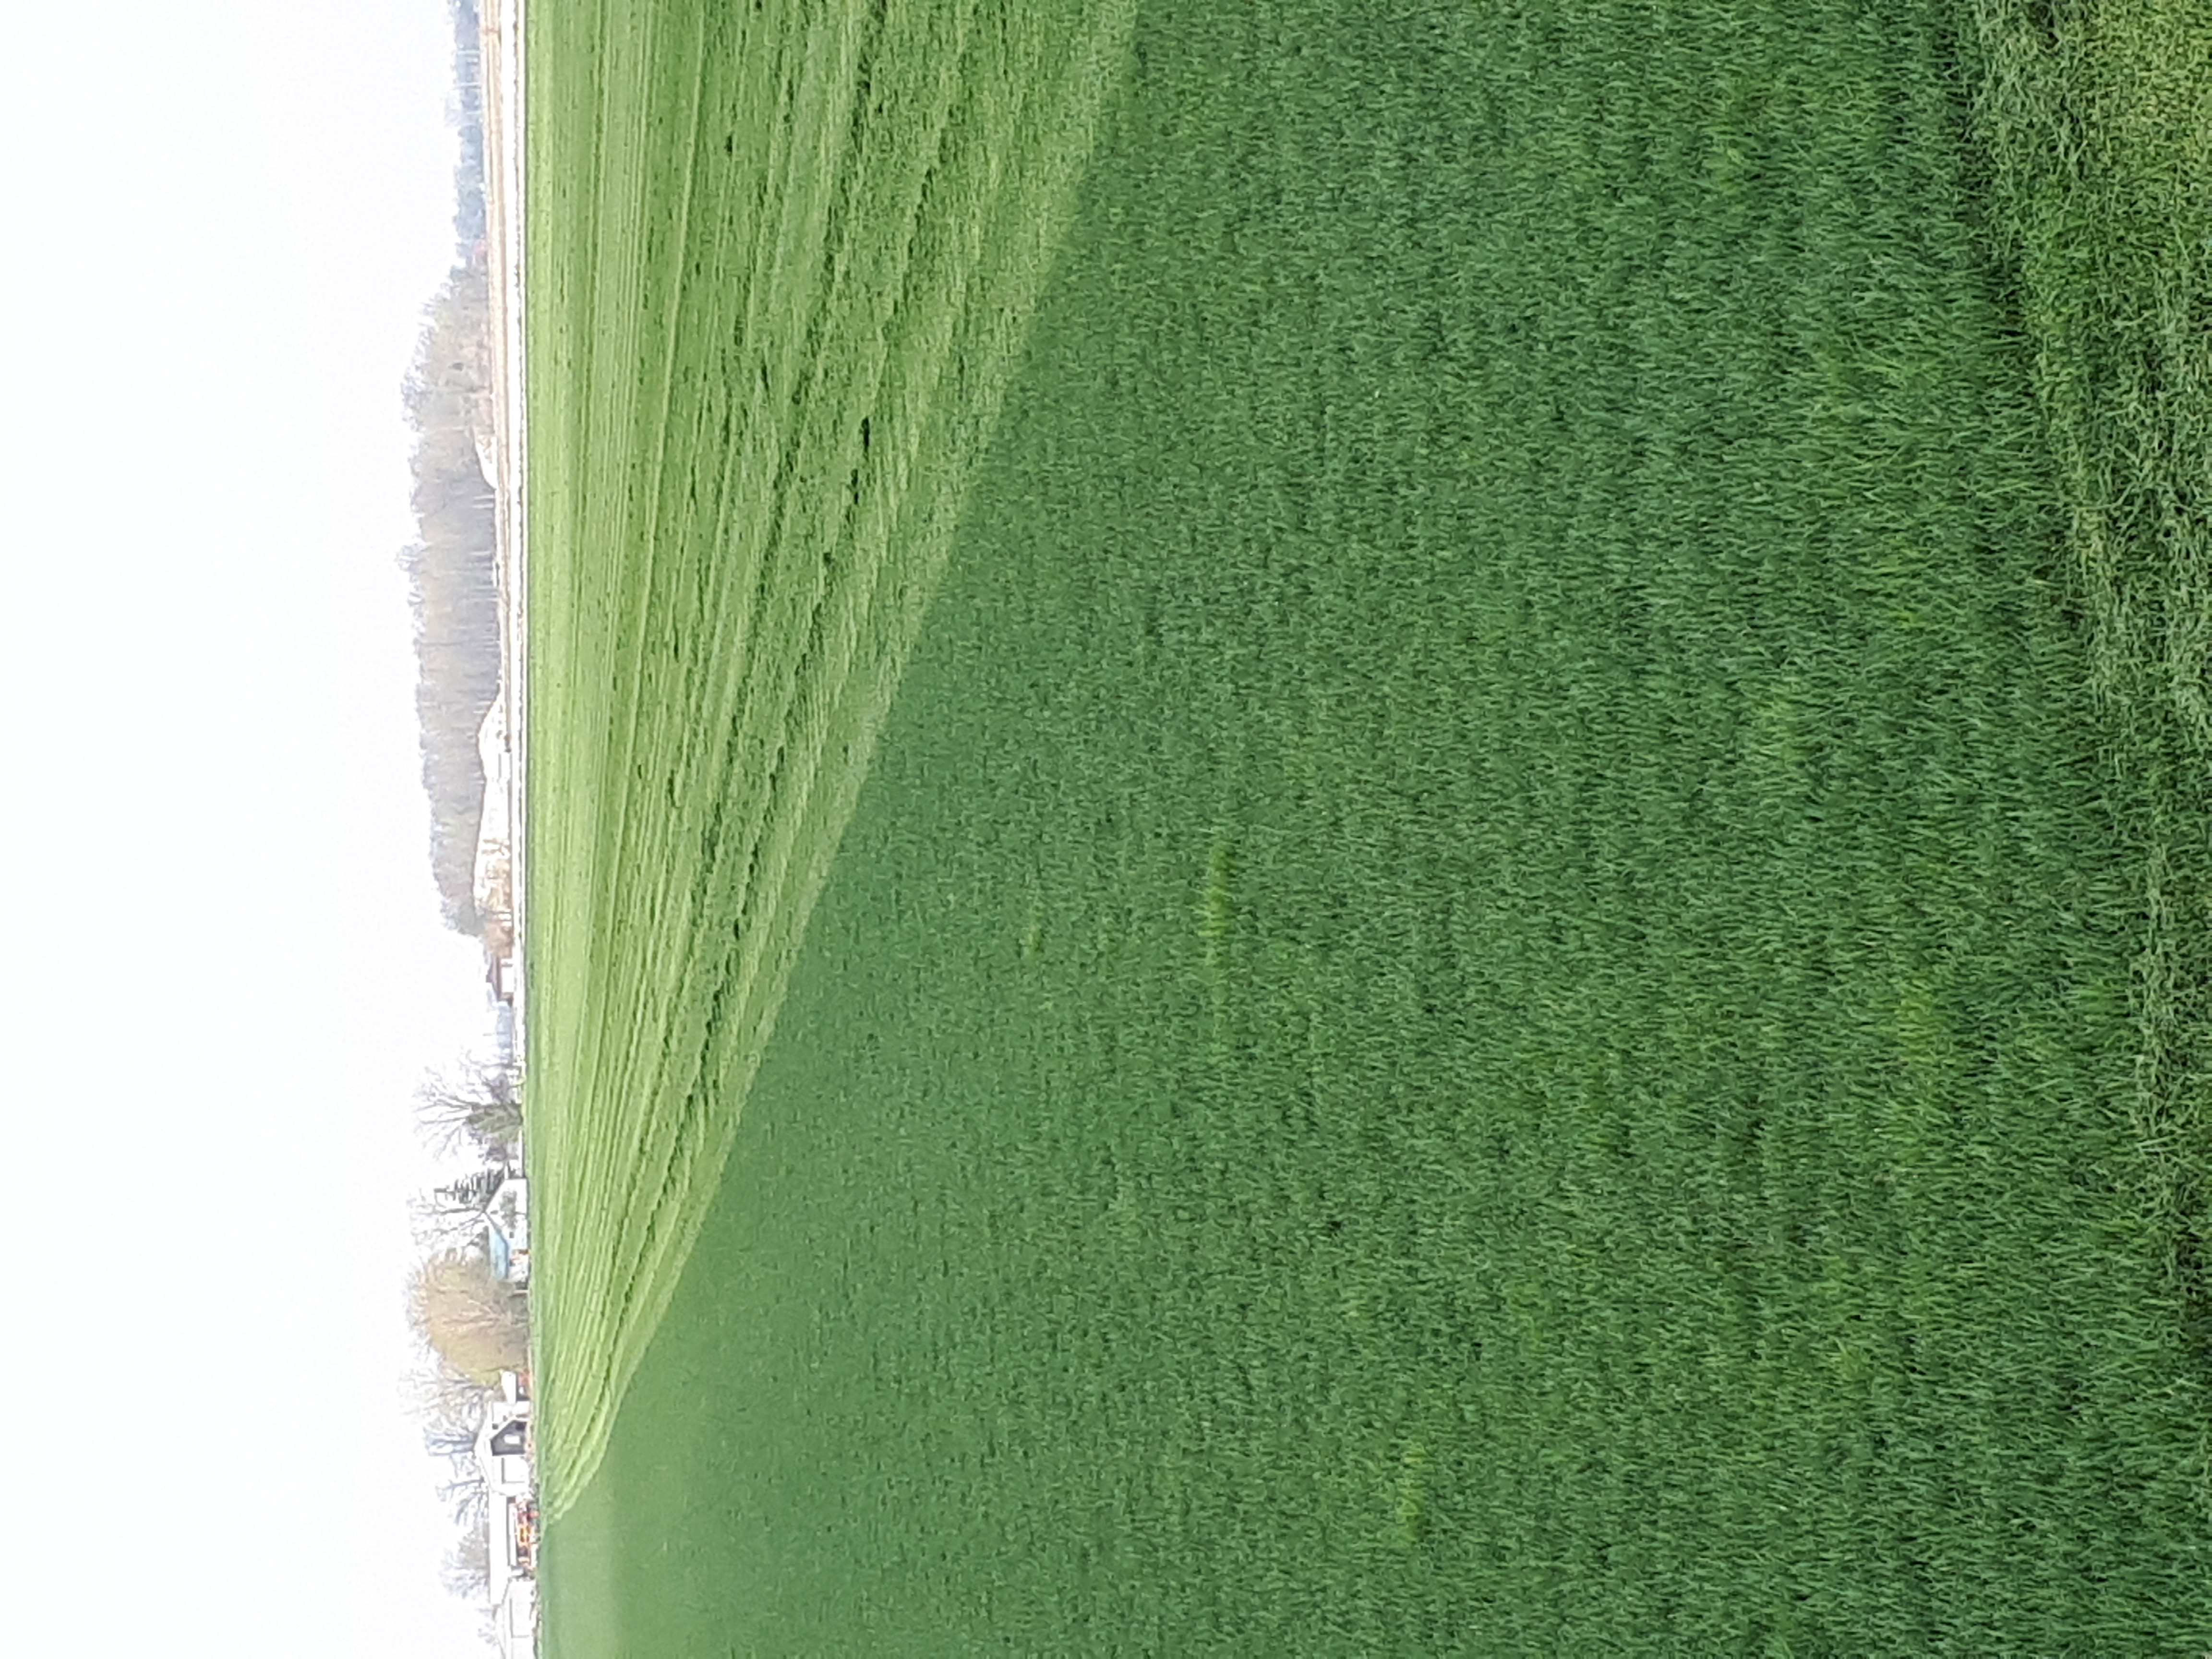 Freshly Mowed Kentucky Blue Grass